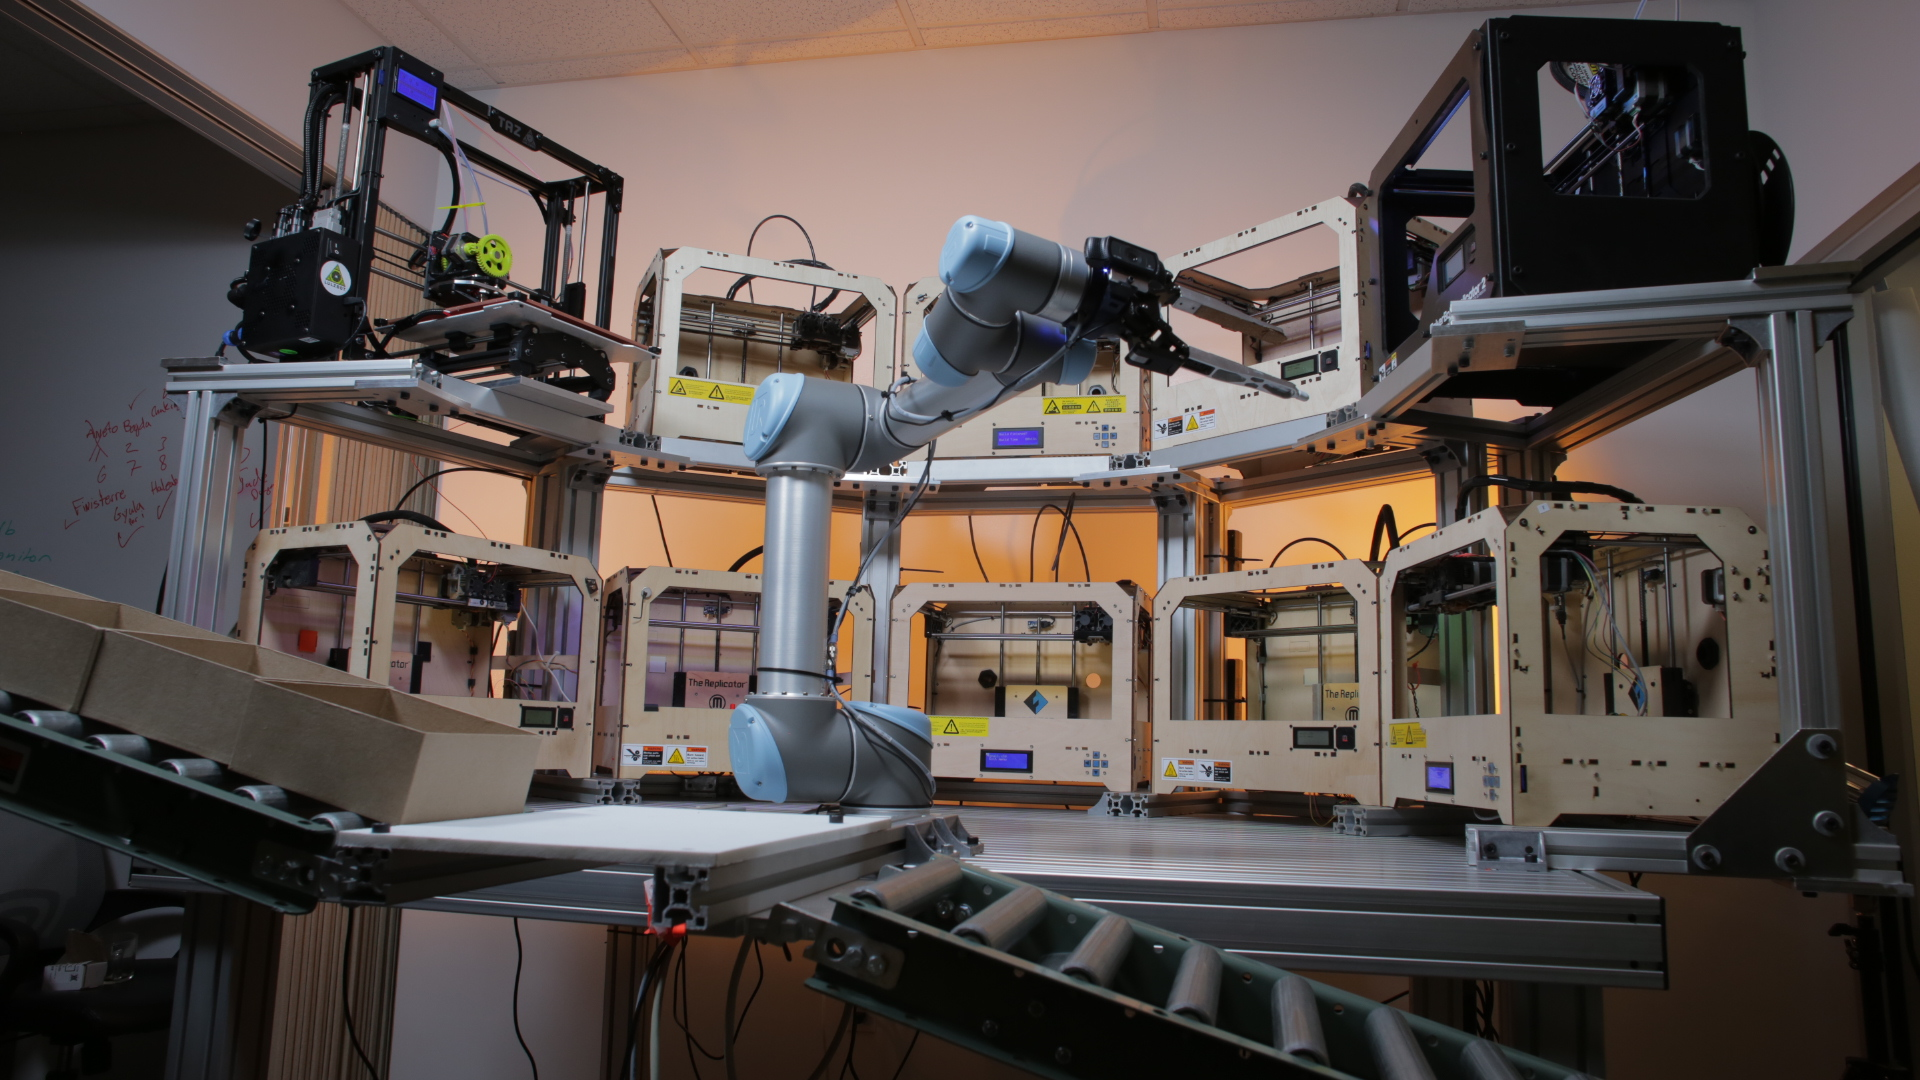 The Tend.ai system at work managing 3D printers